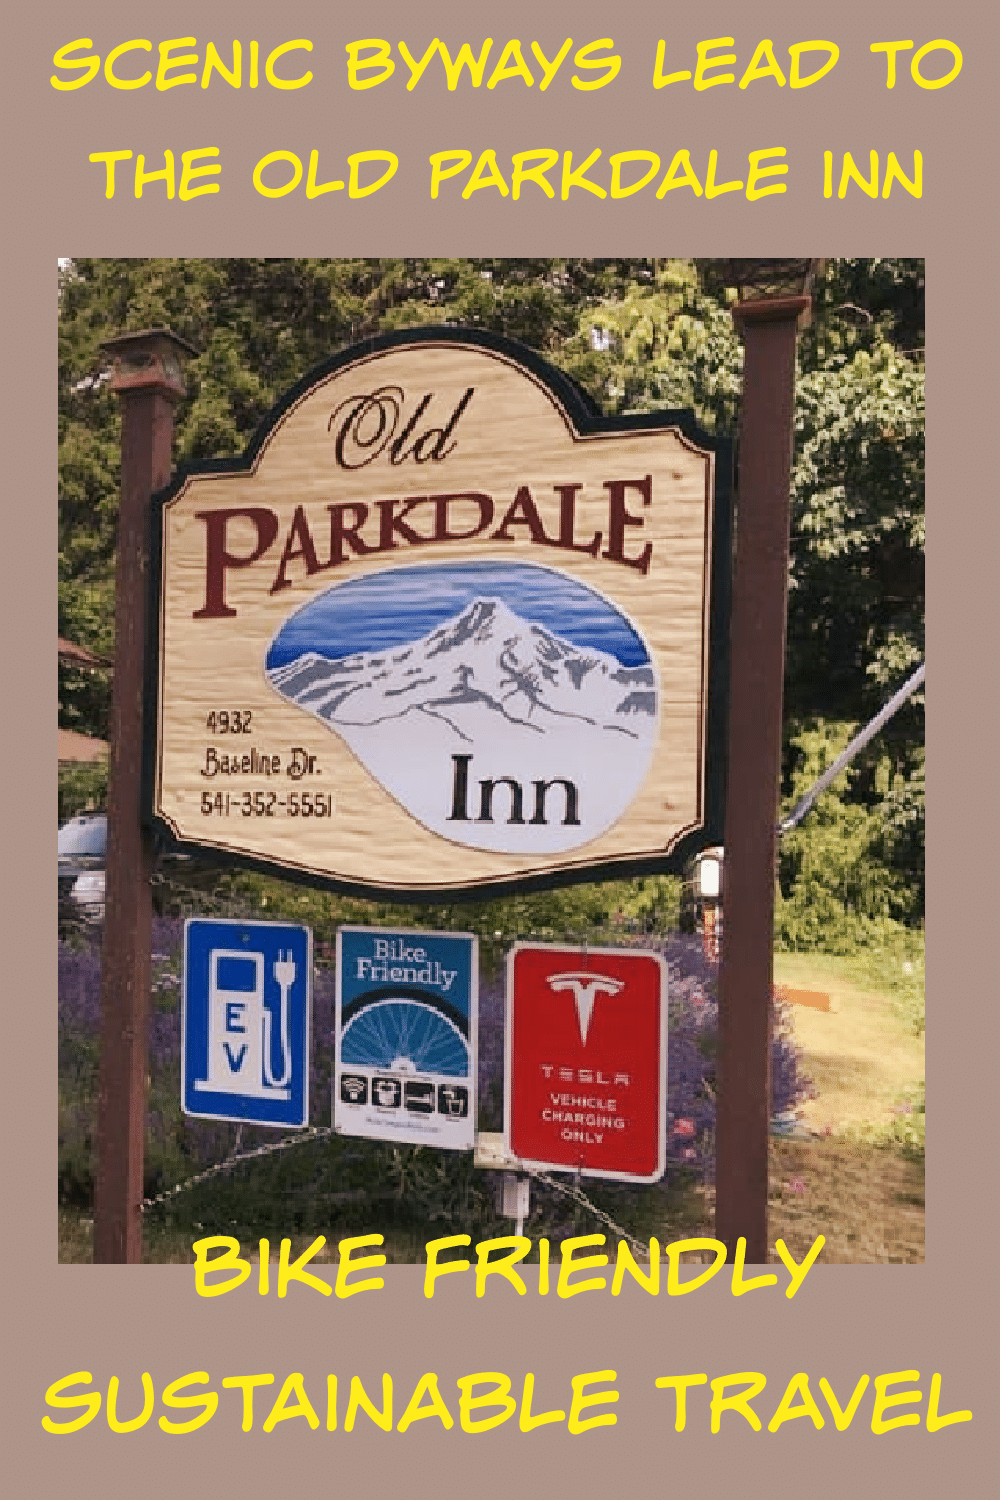 Three Oregon Scenic Byways lead to the Old Parkdale Inn, Old Parkdale Inn